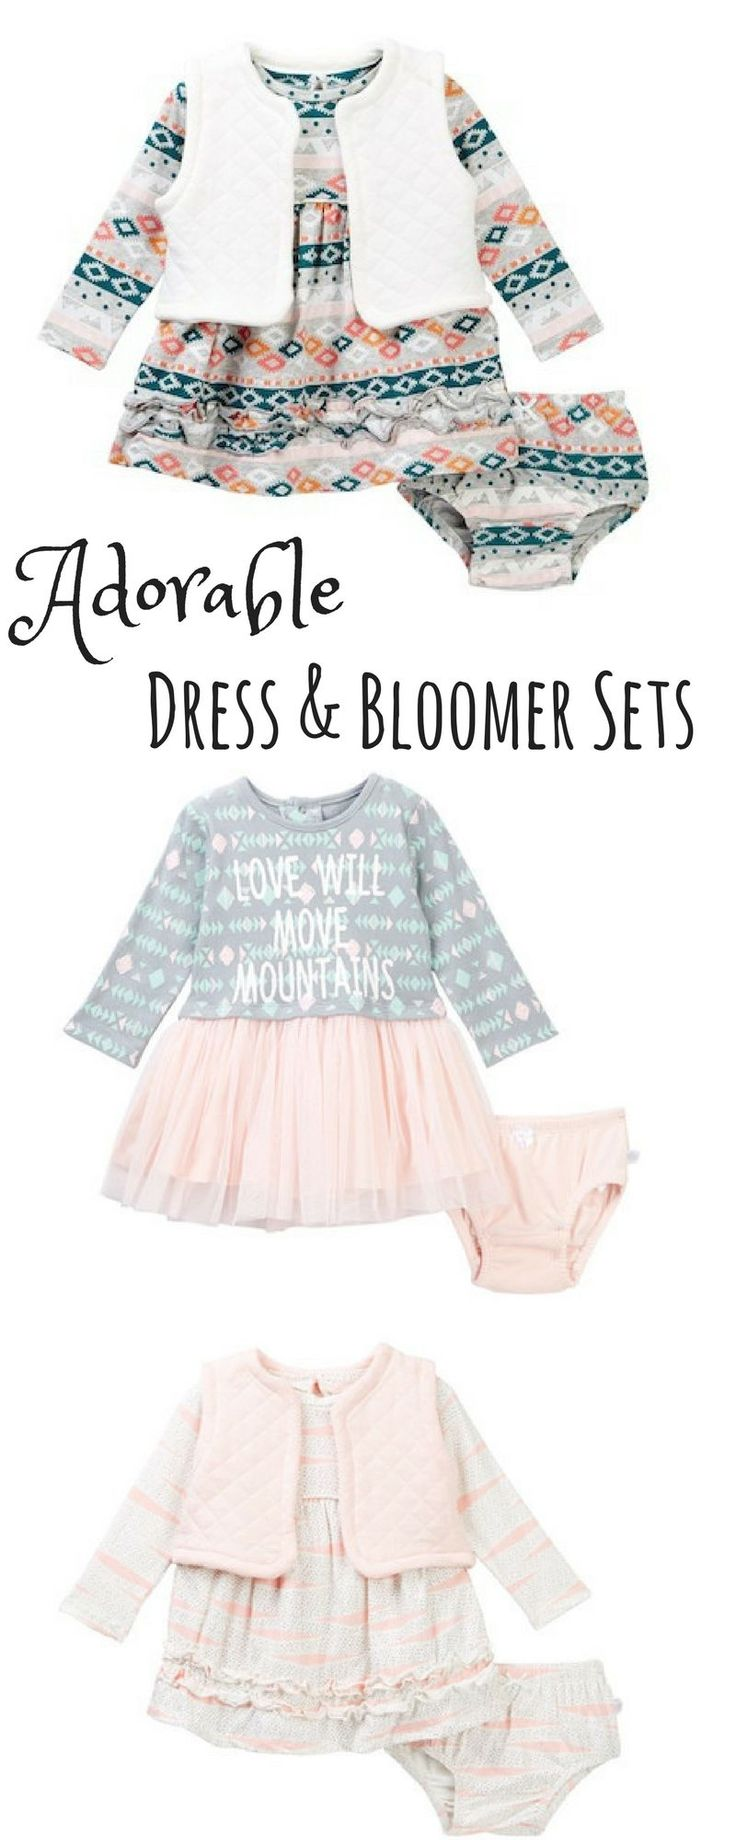 Adorable baby girl dress and bloomer sets.  girls fashion | outfits | clothes | summer | spring | baby | newborn | baby shower gift | style | cute | pink | tutu | afflink